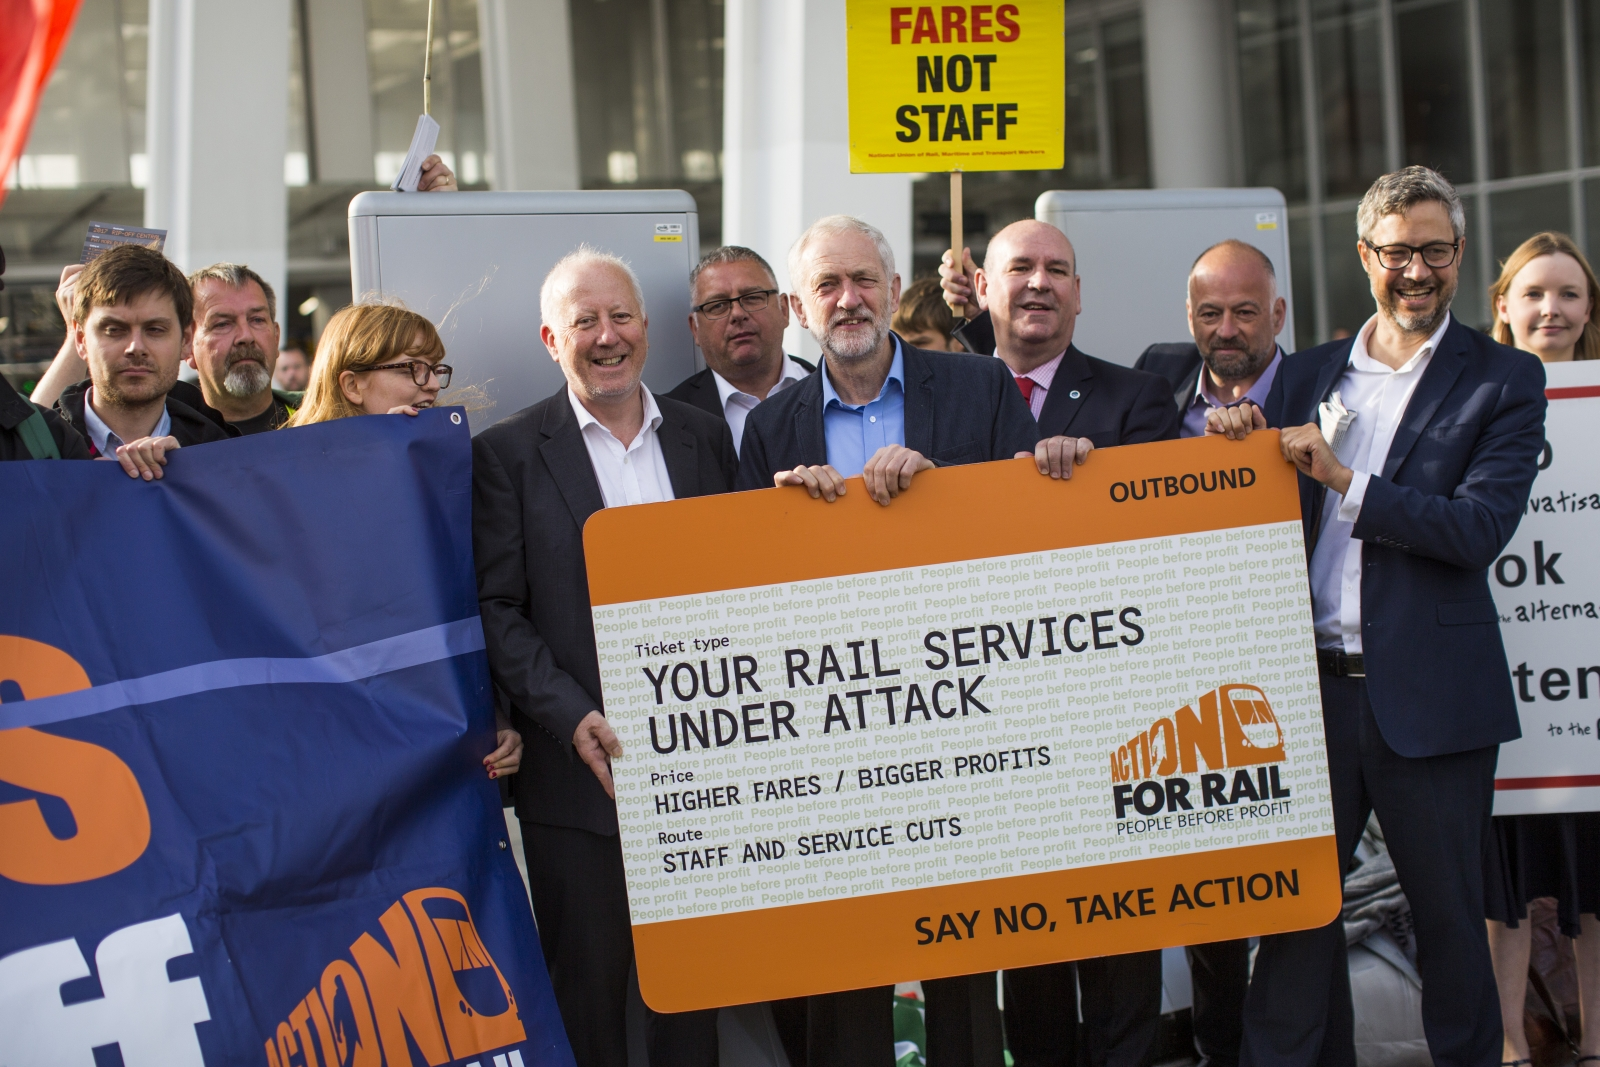 Jeremy Corbyn calls for railways to be renationalised as ticket fares rise 1.9%